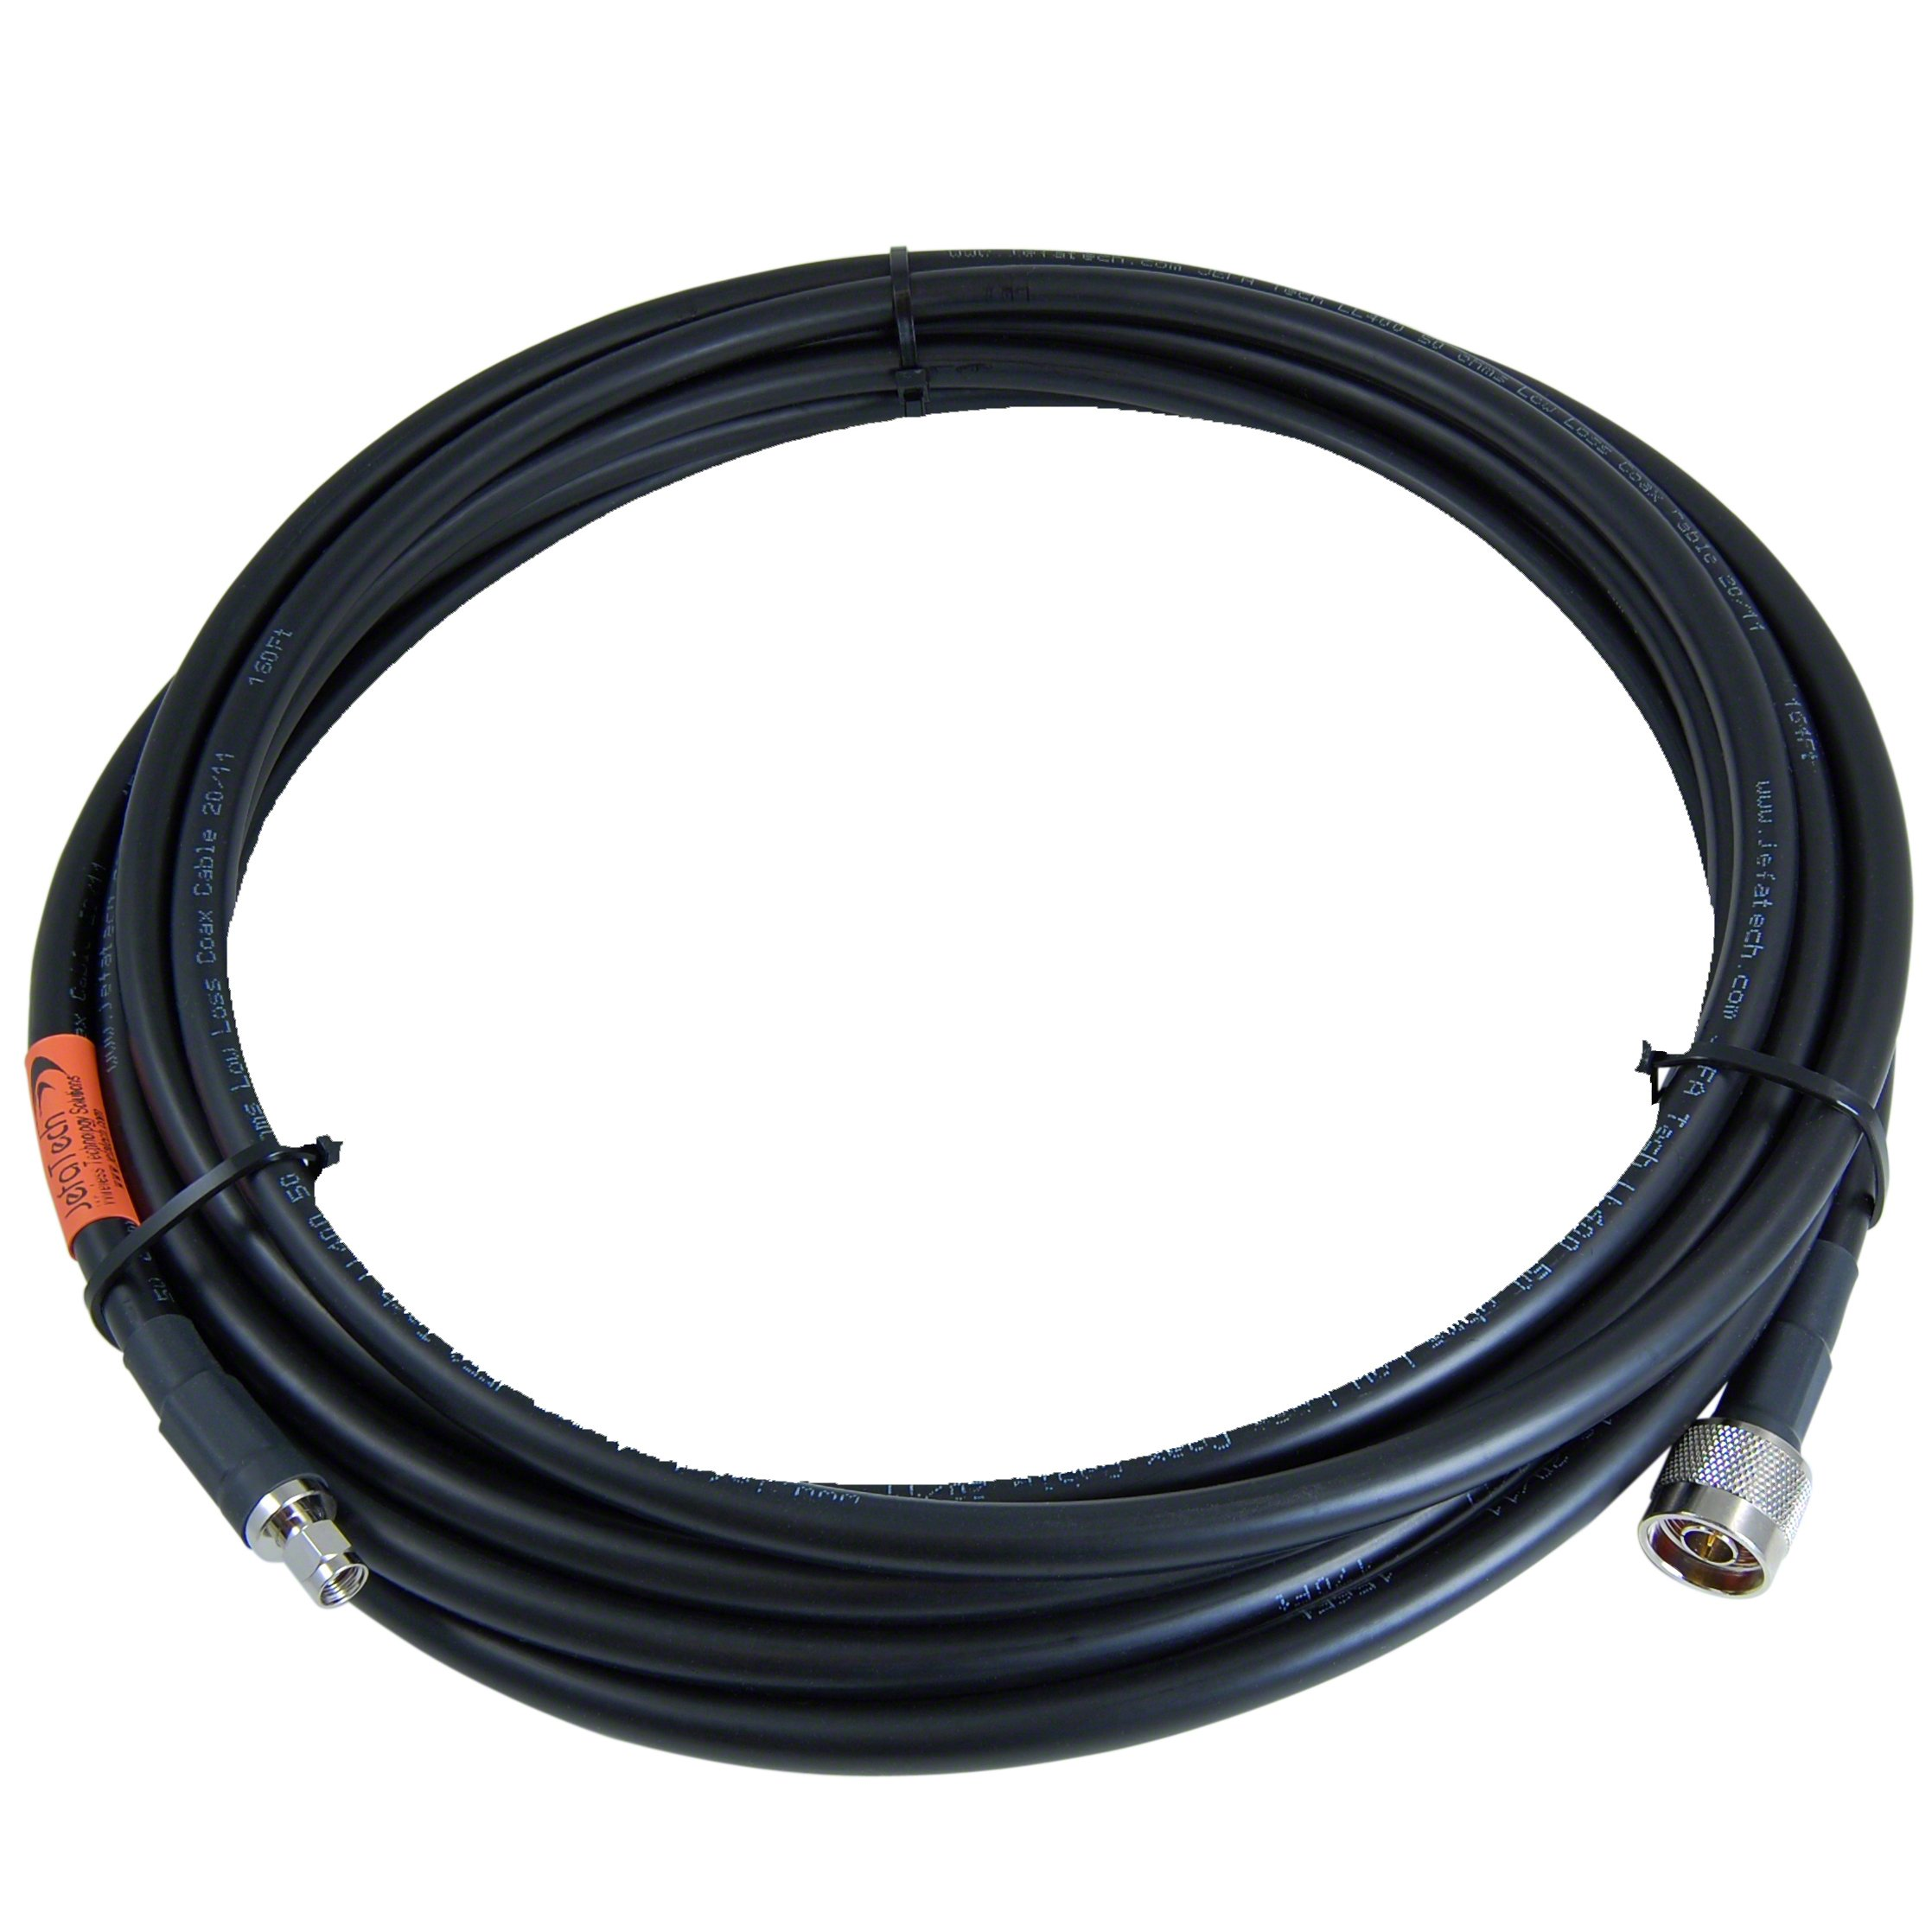 JEFA Tech 20 Feet CradlePoint to External Antenna Cable Assembly - SMA Male to N Male by JEFA Tech